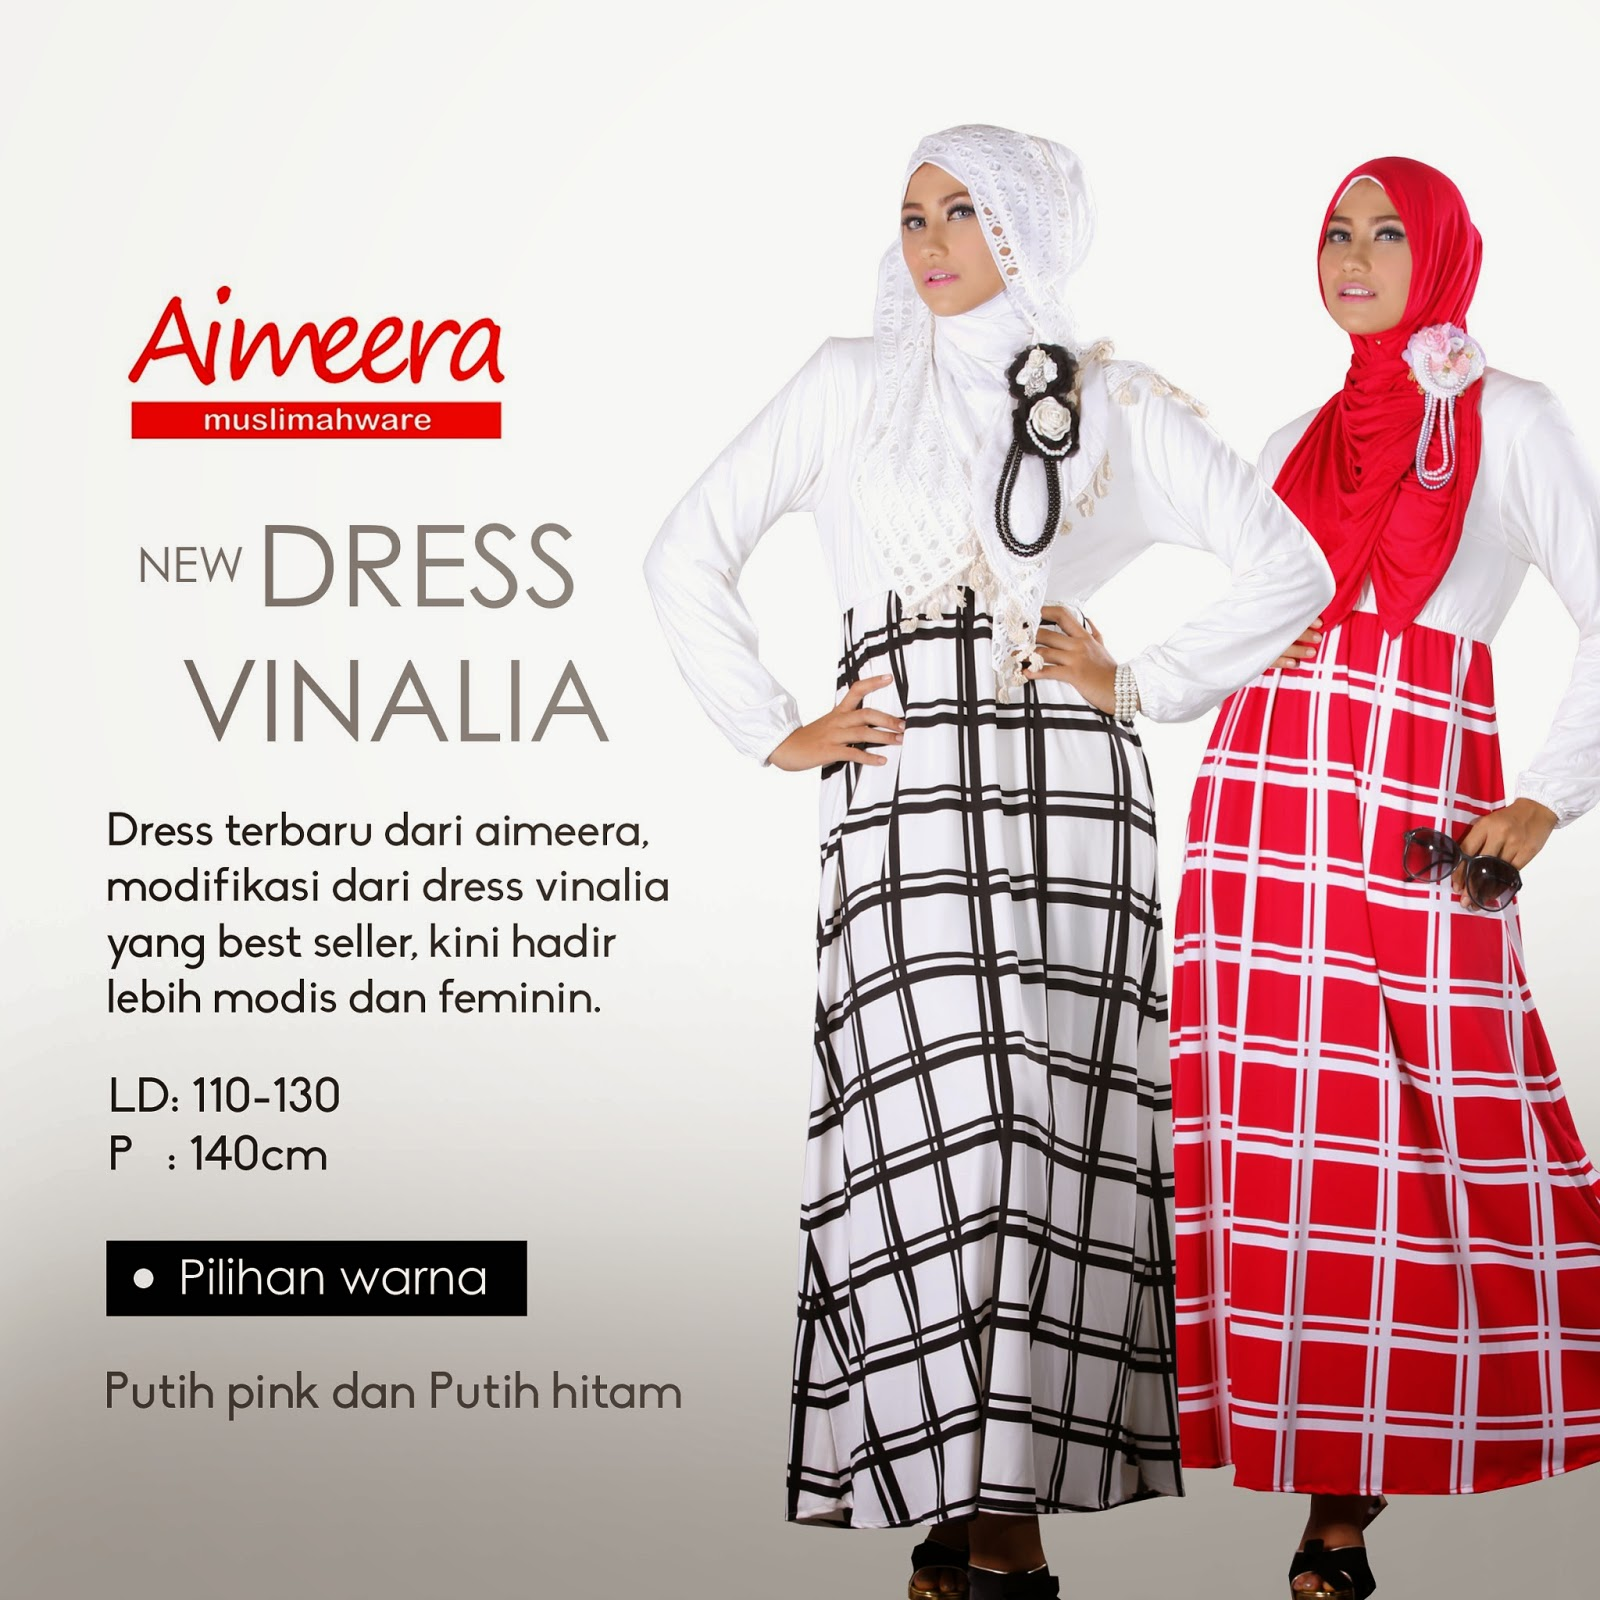 New Dress Vinalia